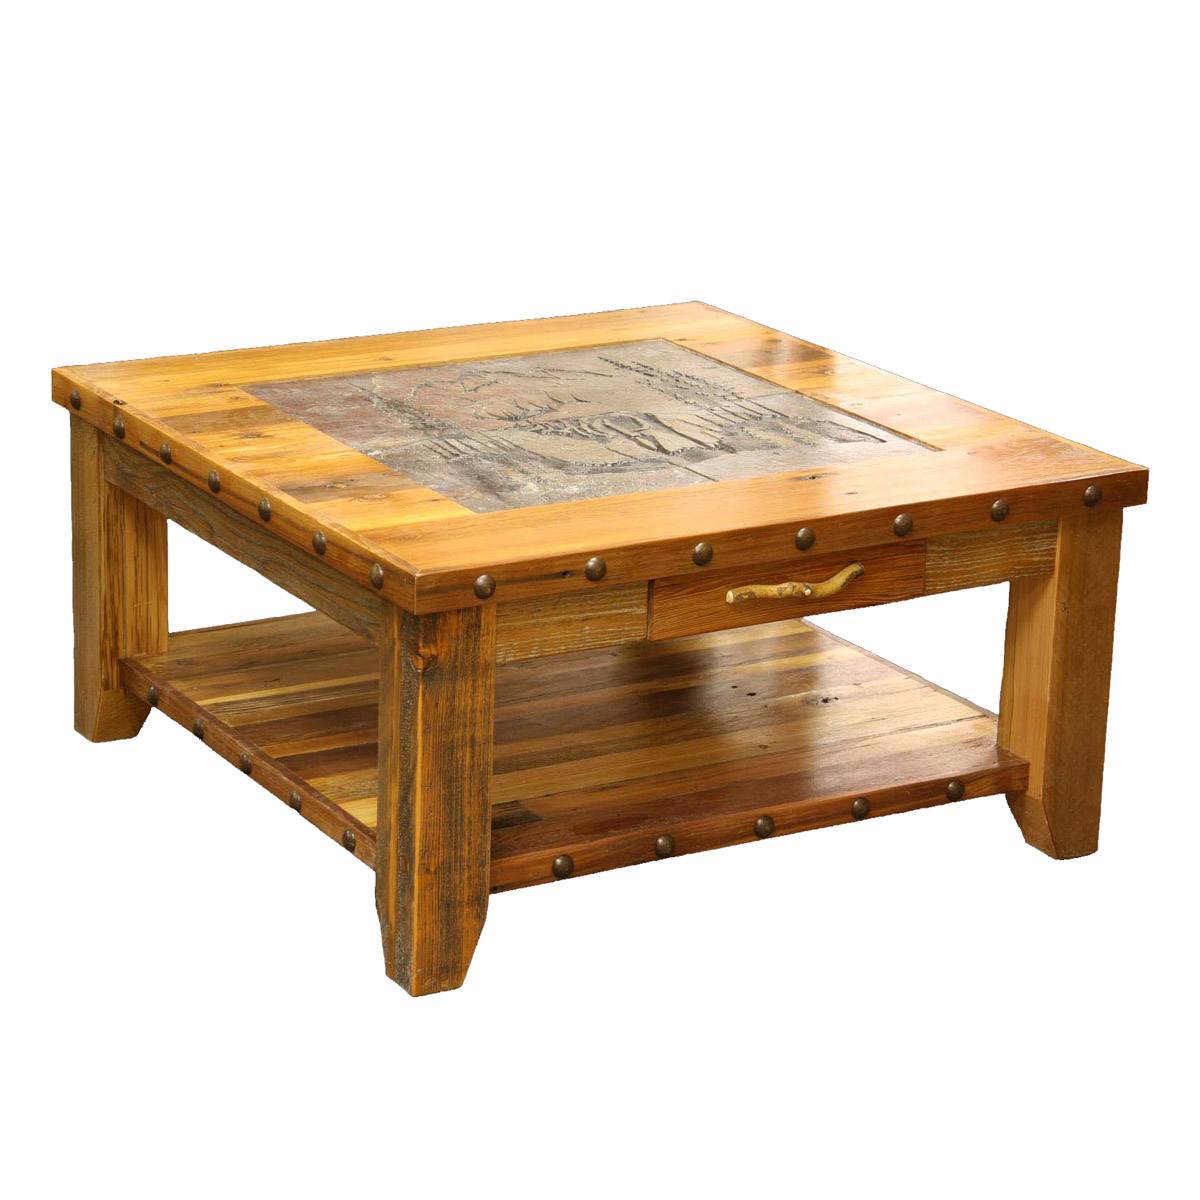 barnwood elk scene tile top coffee table with nailheads accent white glass side lucite and brass screen porch furniture ashley clear bedside lamps office outdoor end tables patio